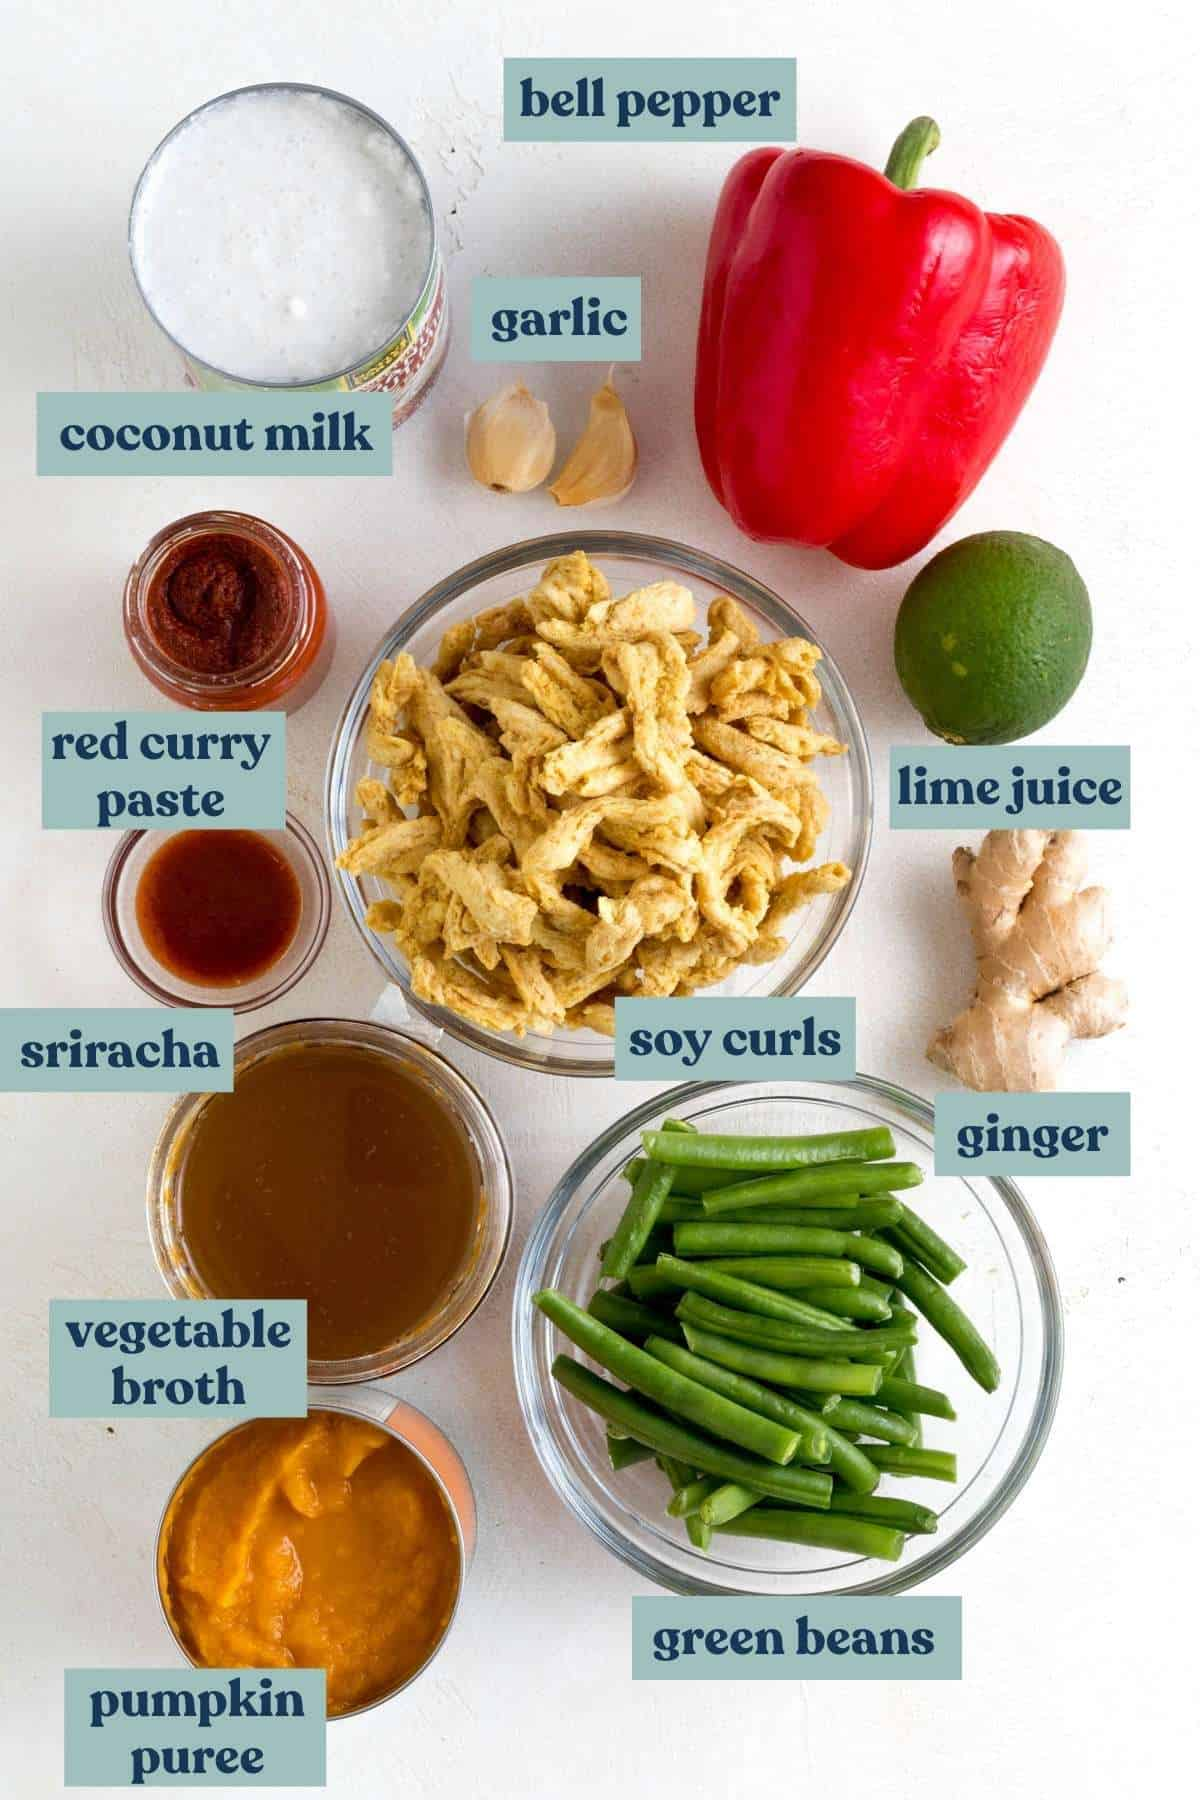 Ingredients needed for Thai pumpkin curry measured into bowls and labeled.